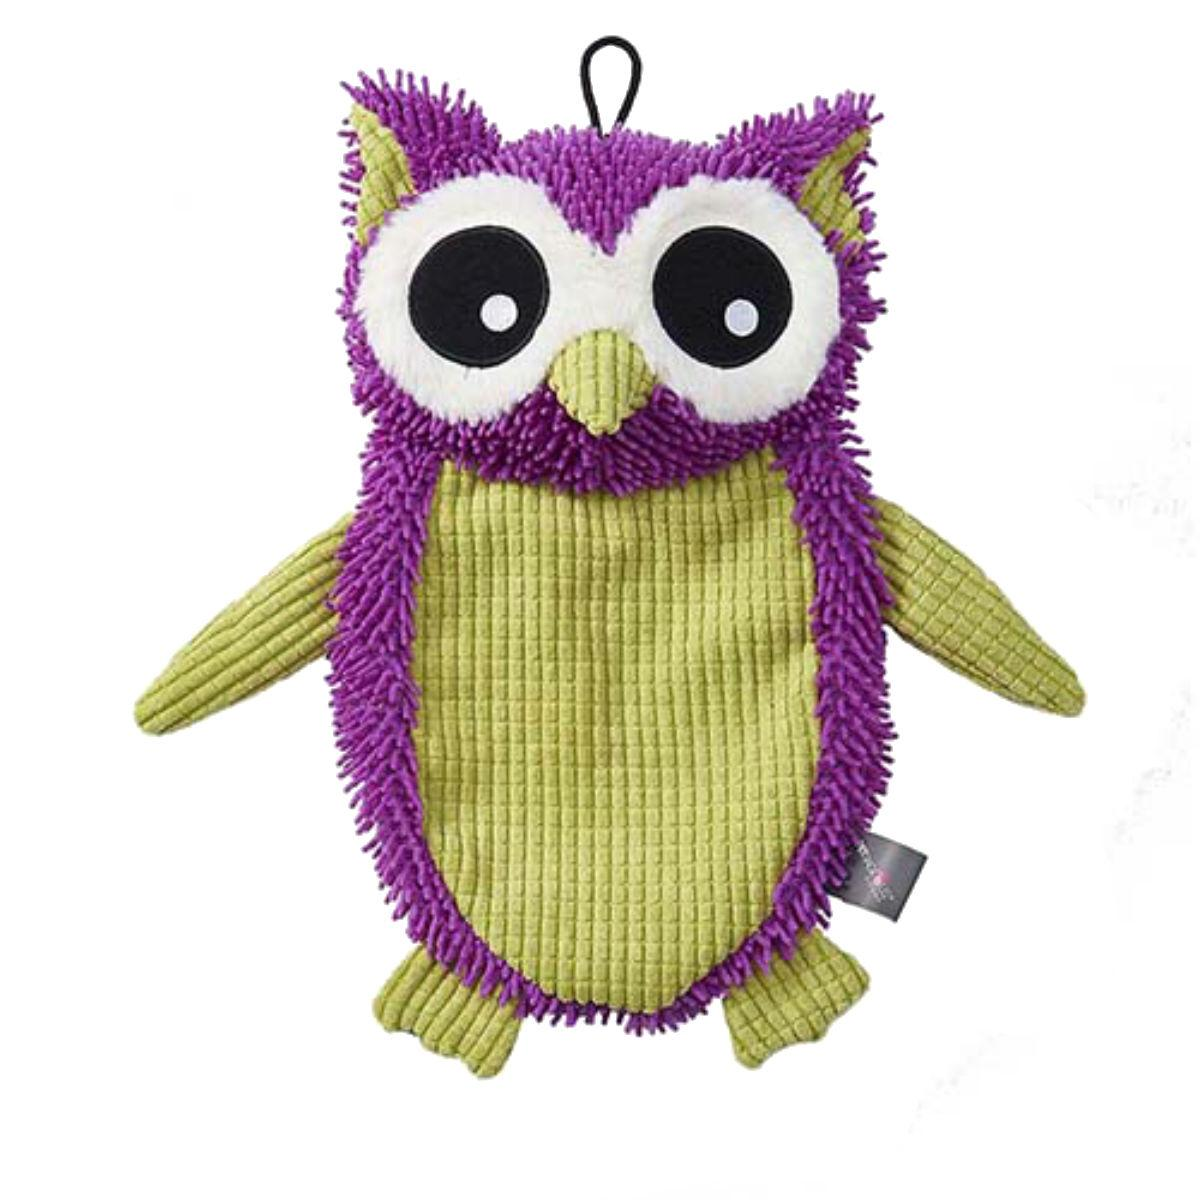 FlatRageous Dog Toy - Purple and Green Owl